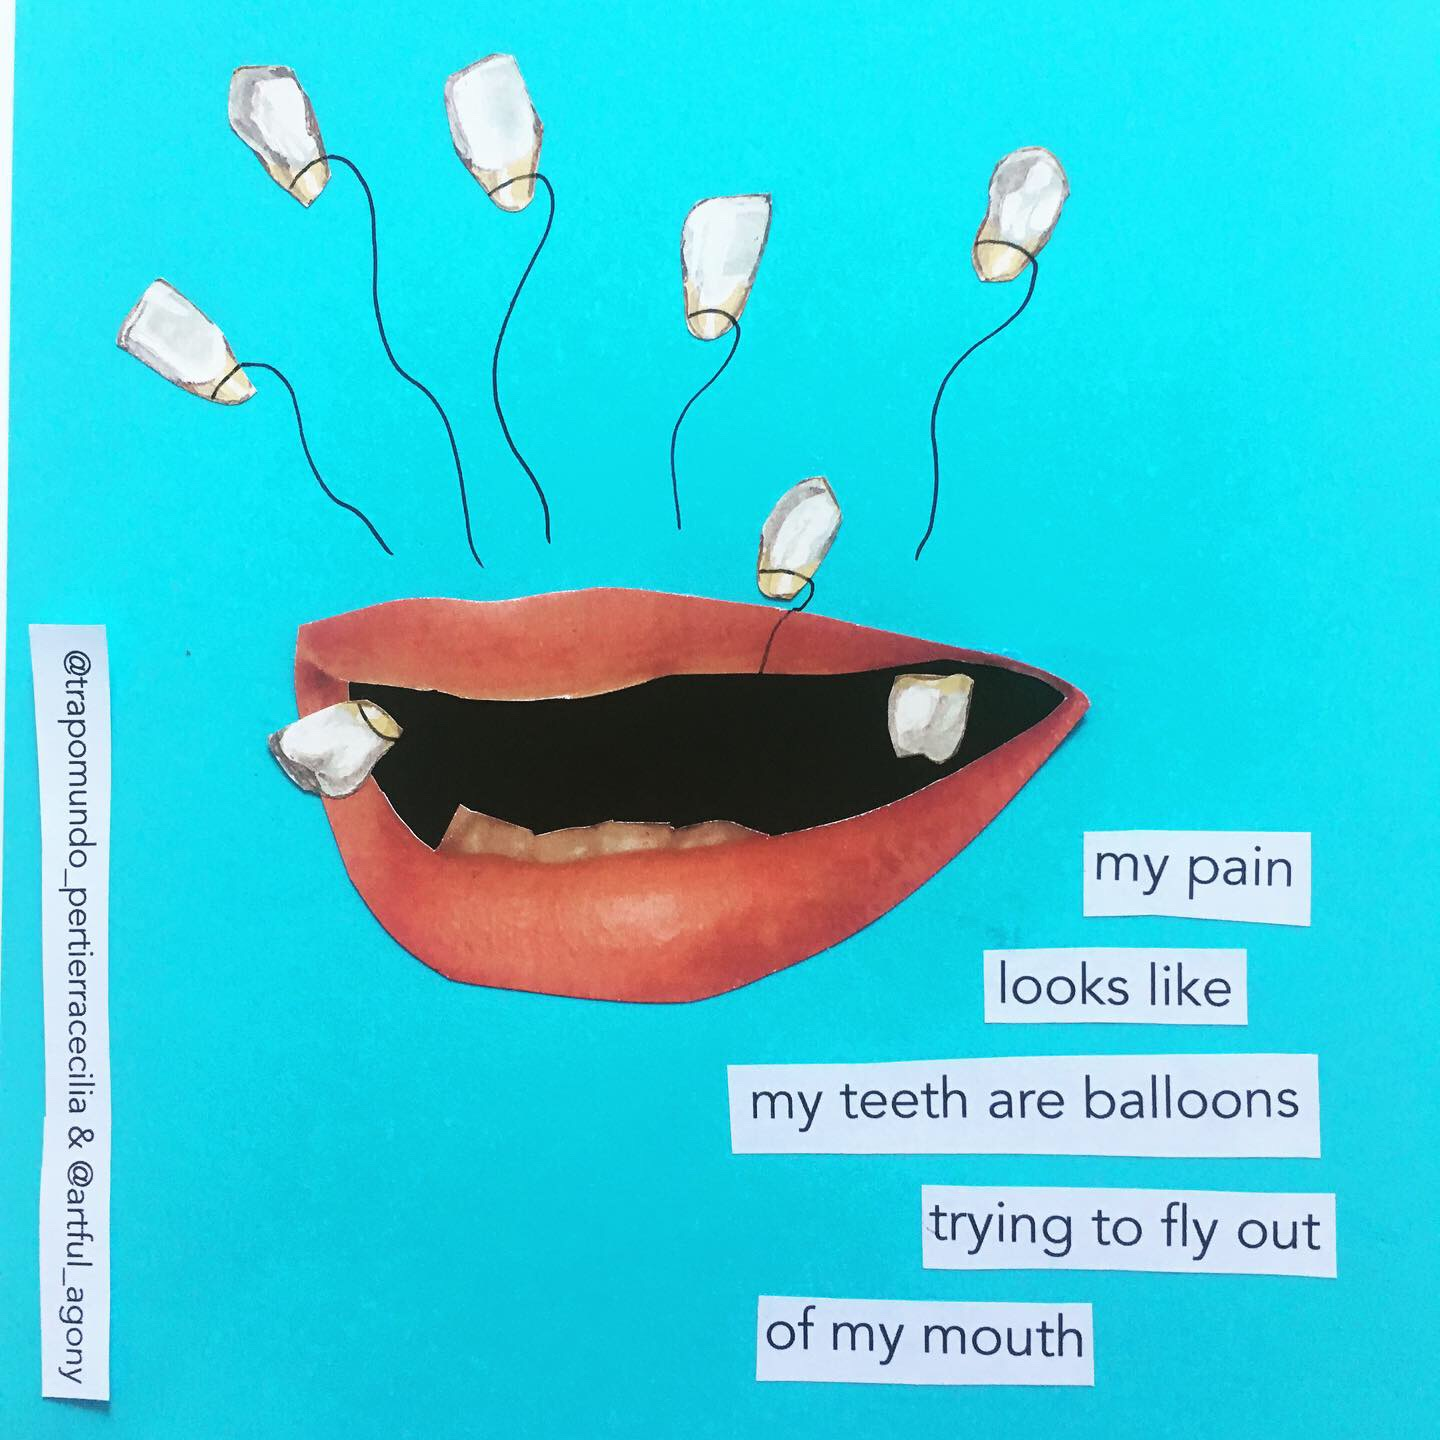 TOOTH BALLOONS  'My pain looks like my teeth are balloons trying to fly out of my mouth.'  @trapomundo_pertierracecilia